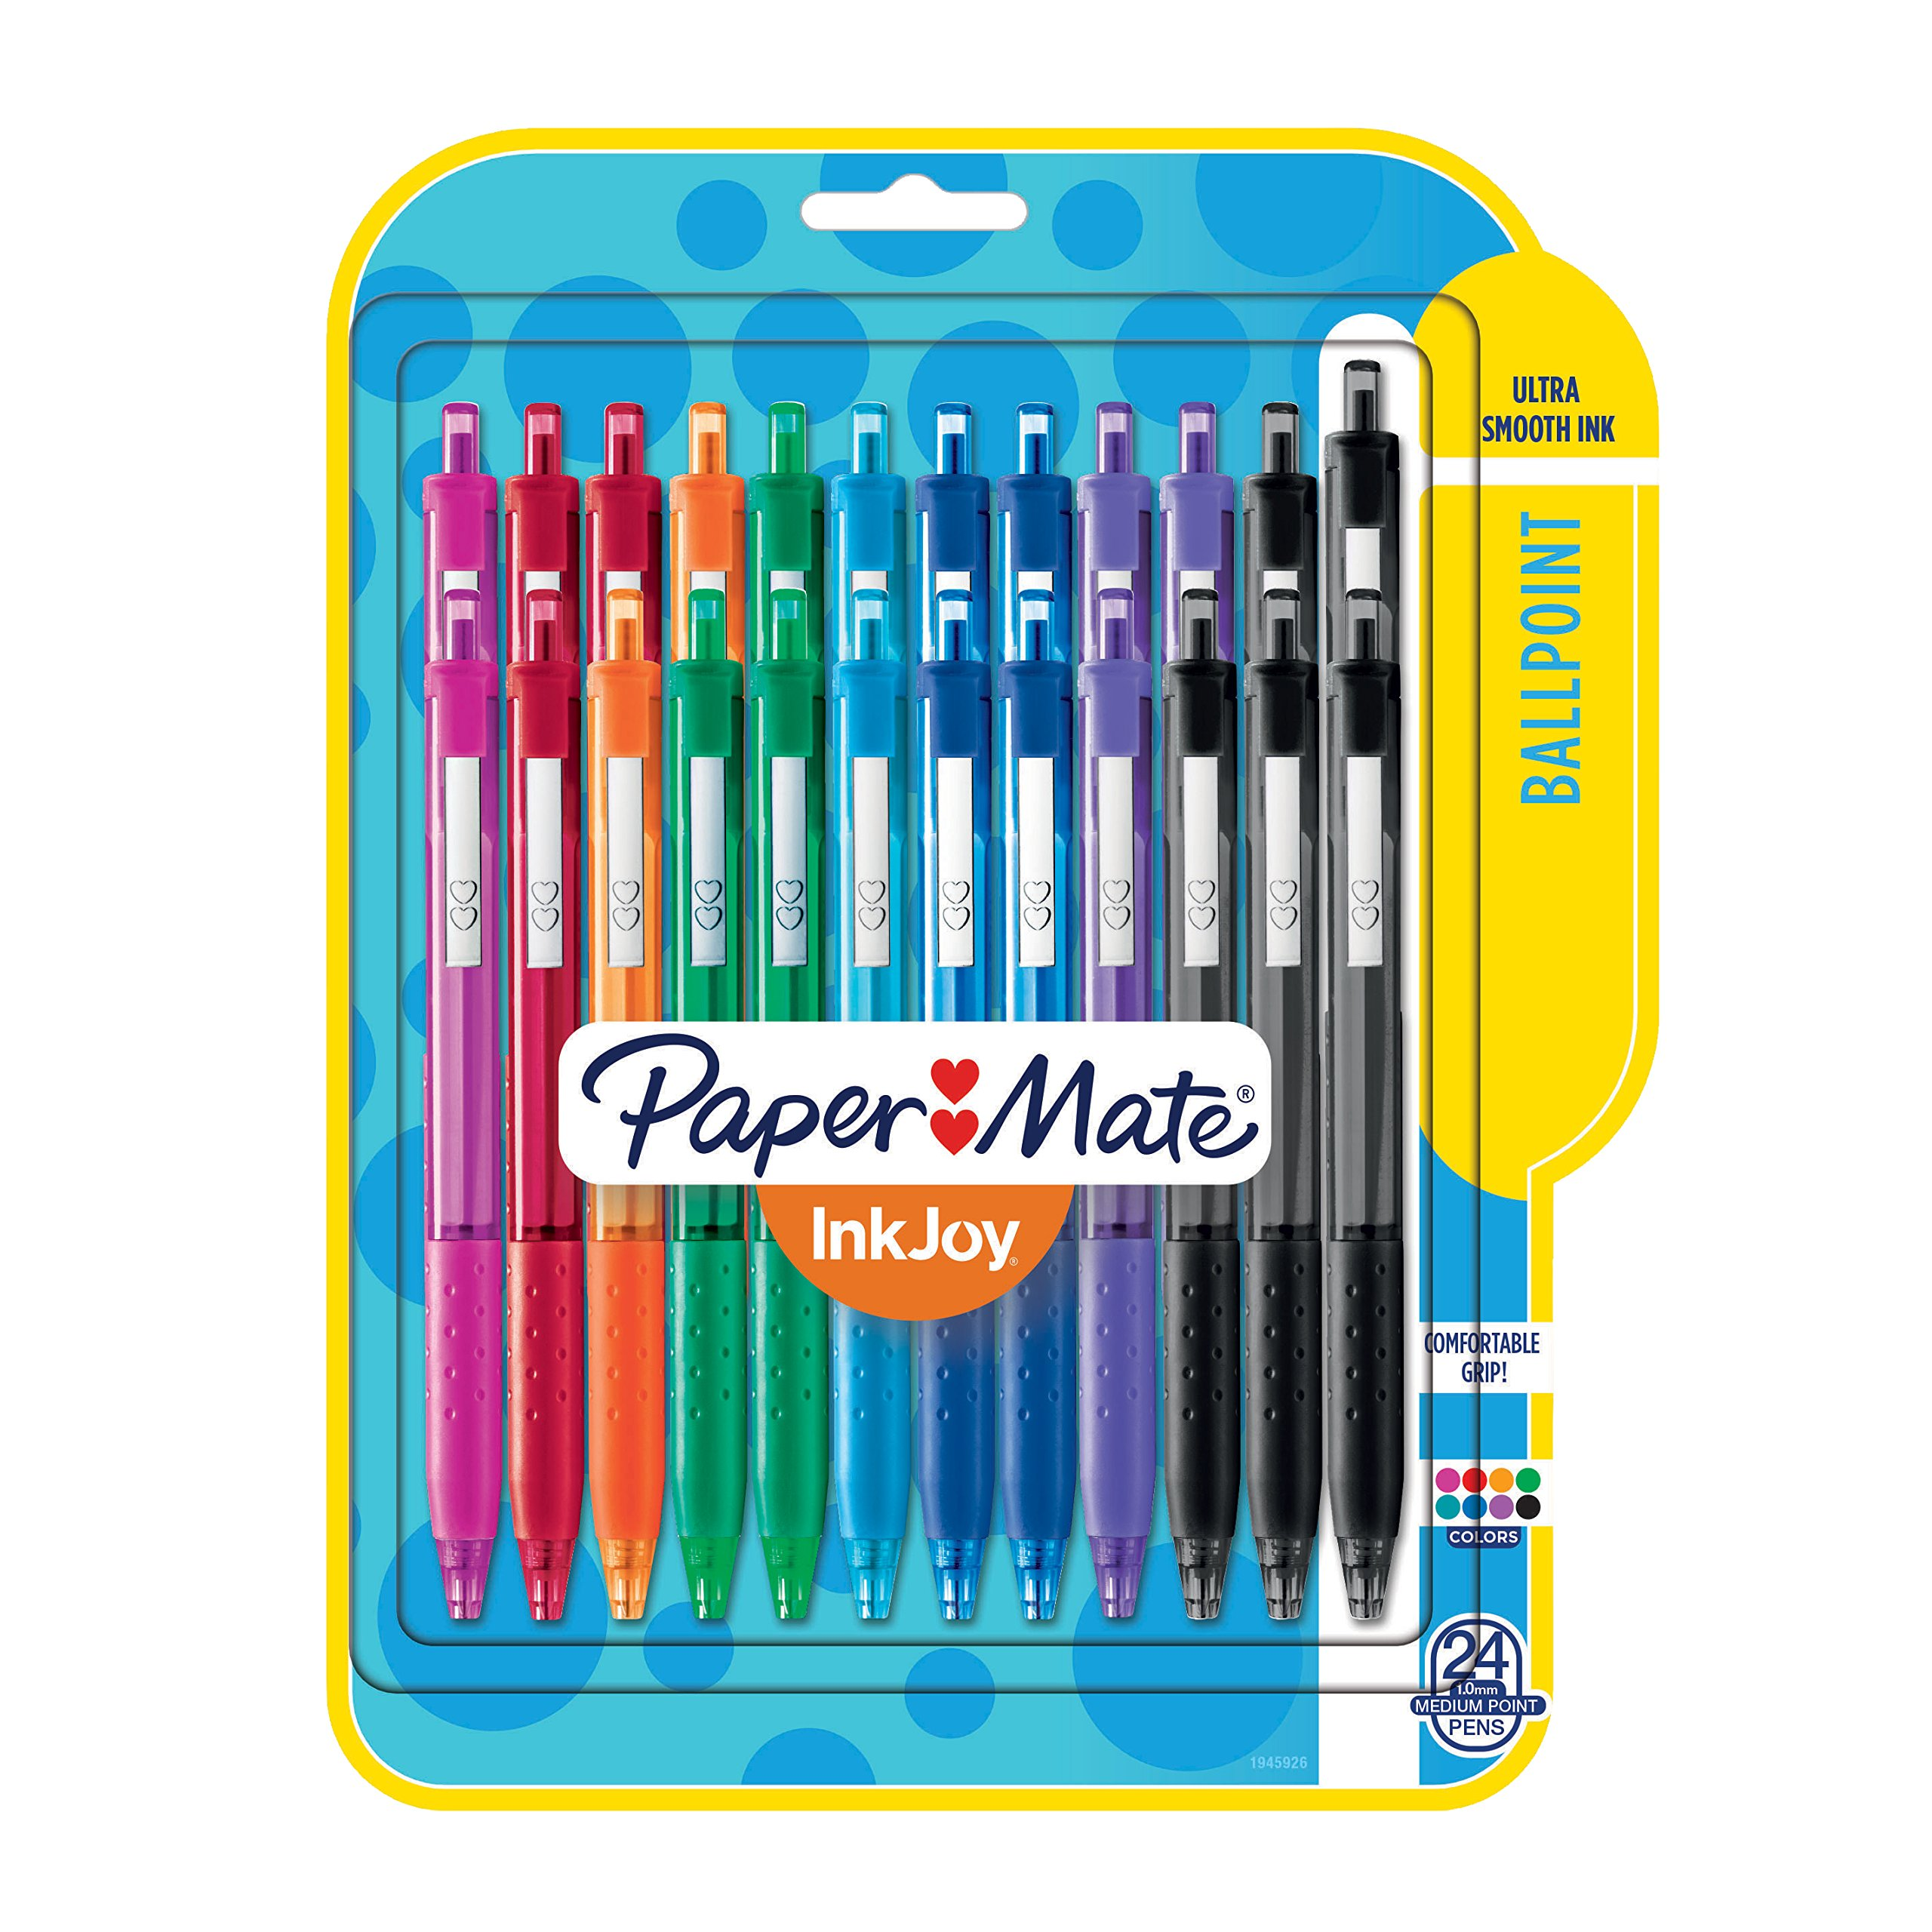 Paper Mate InkJoy 300RT Retractable Ballpoint Pens, Medium Point, 8 Ink Colors, 24 Pack (1945926)